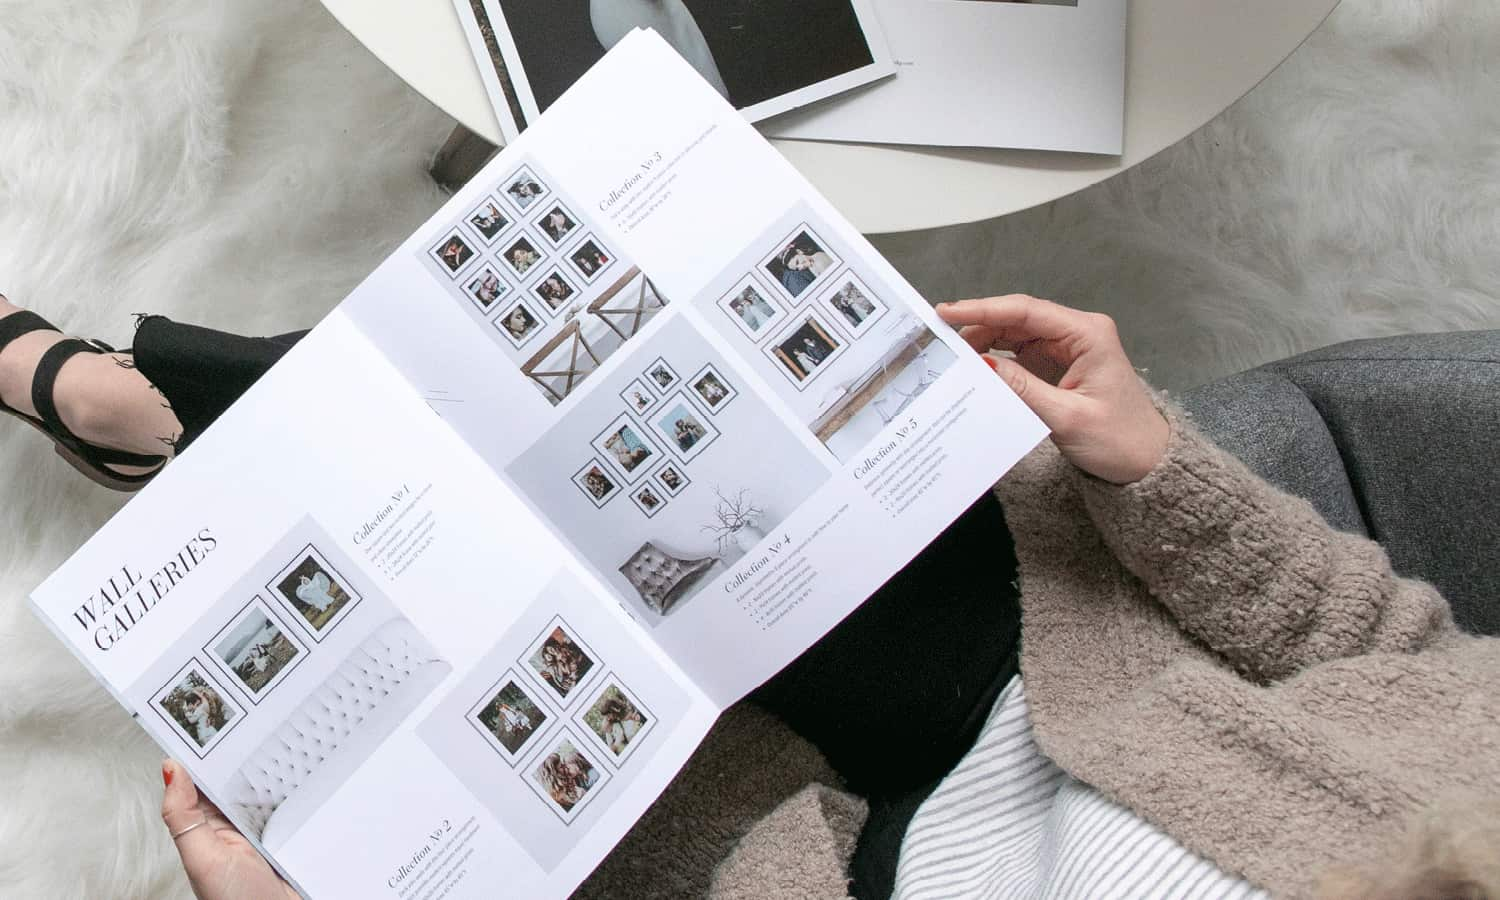 A Photography Lookbook by Design Aglow is shown here open on a client's lap.